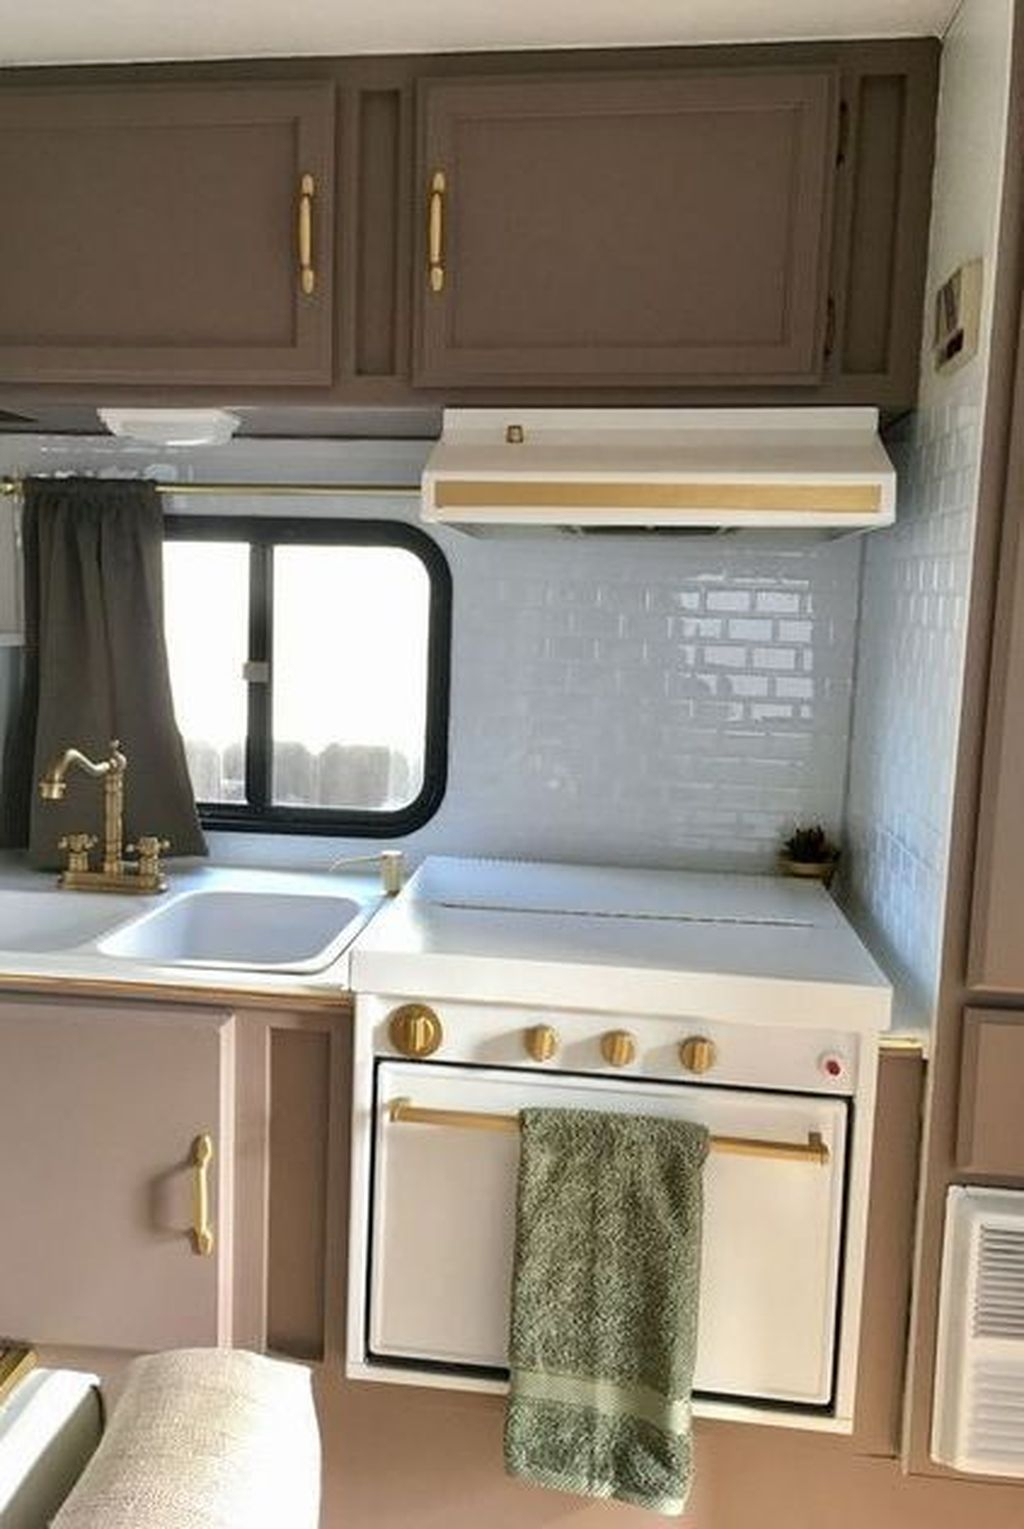 Relaxing Rv Kitchen Design Ideas For More Comfortable Cooking During The Holiday 25